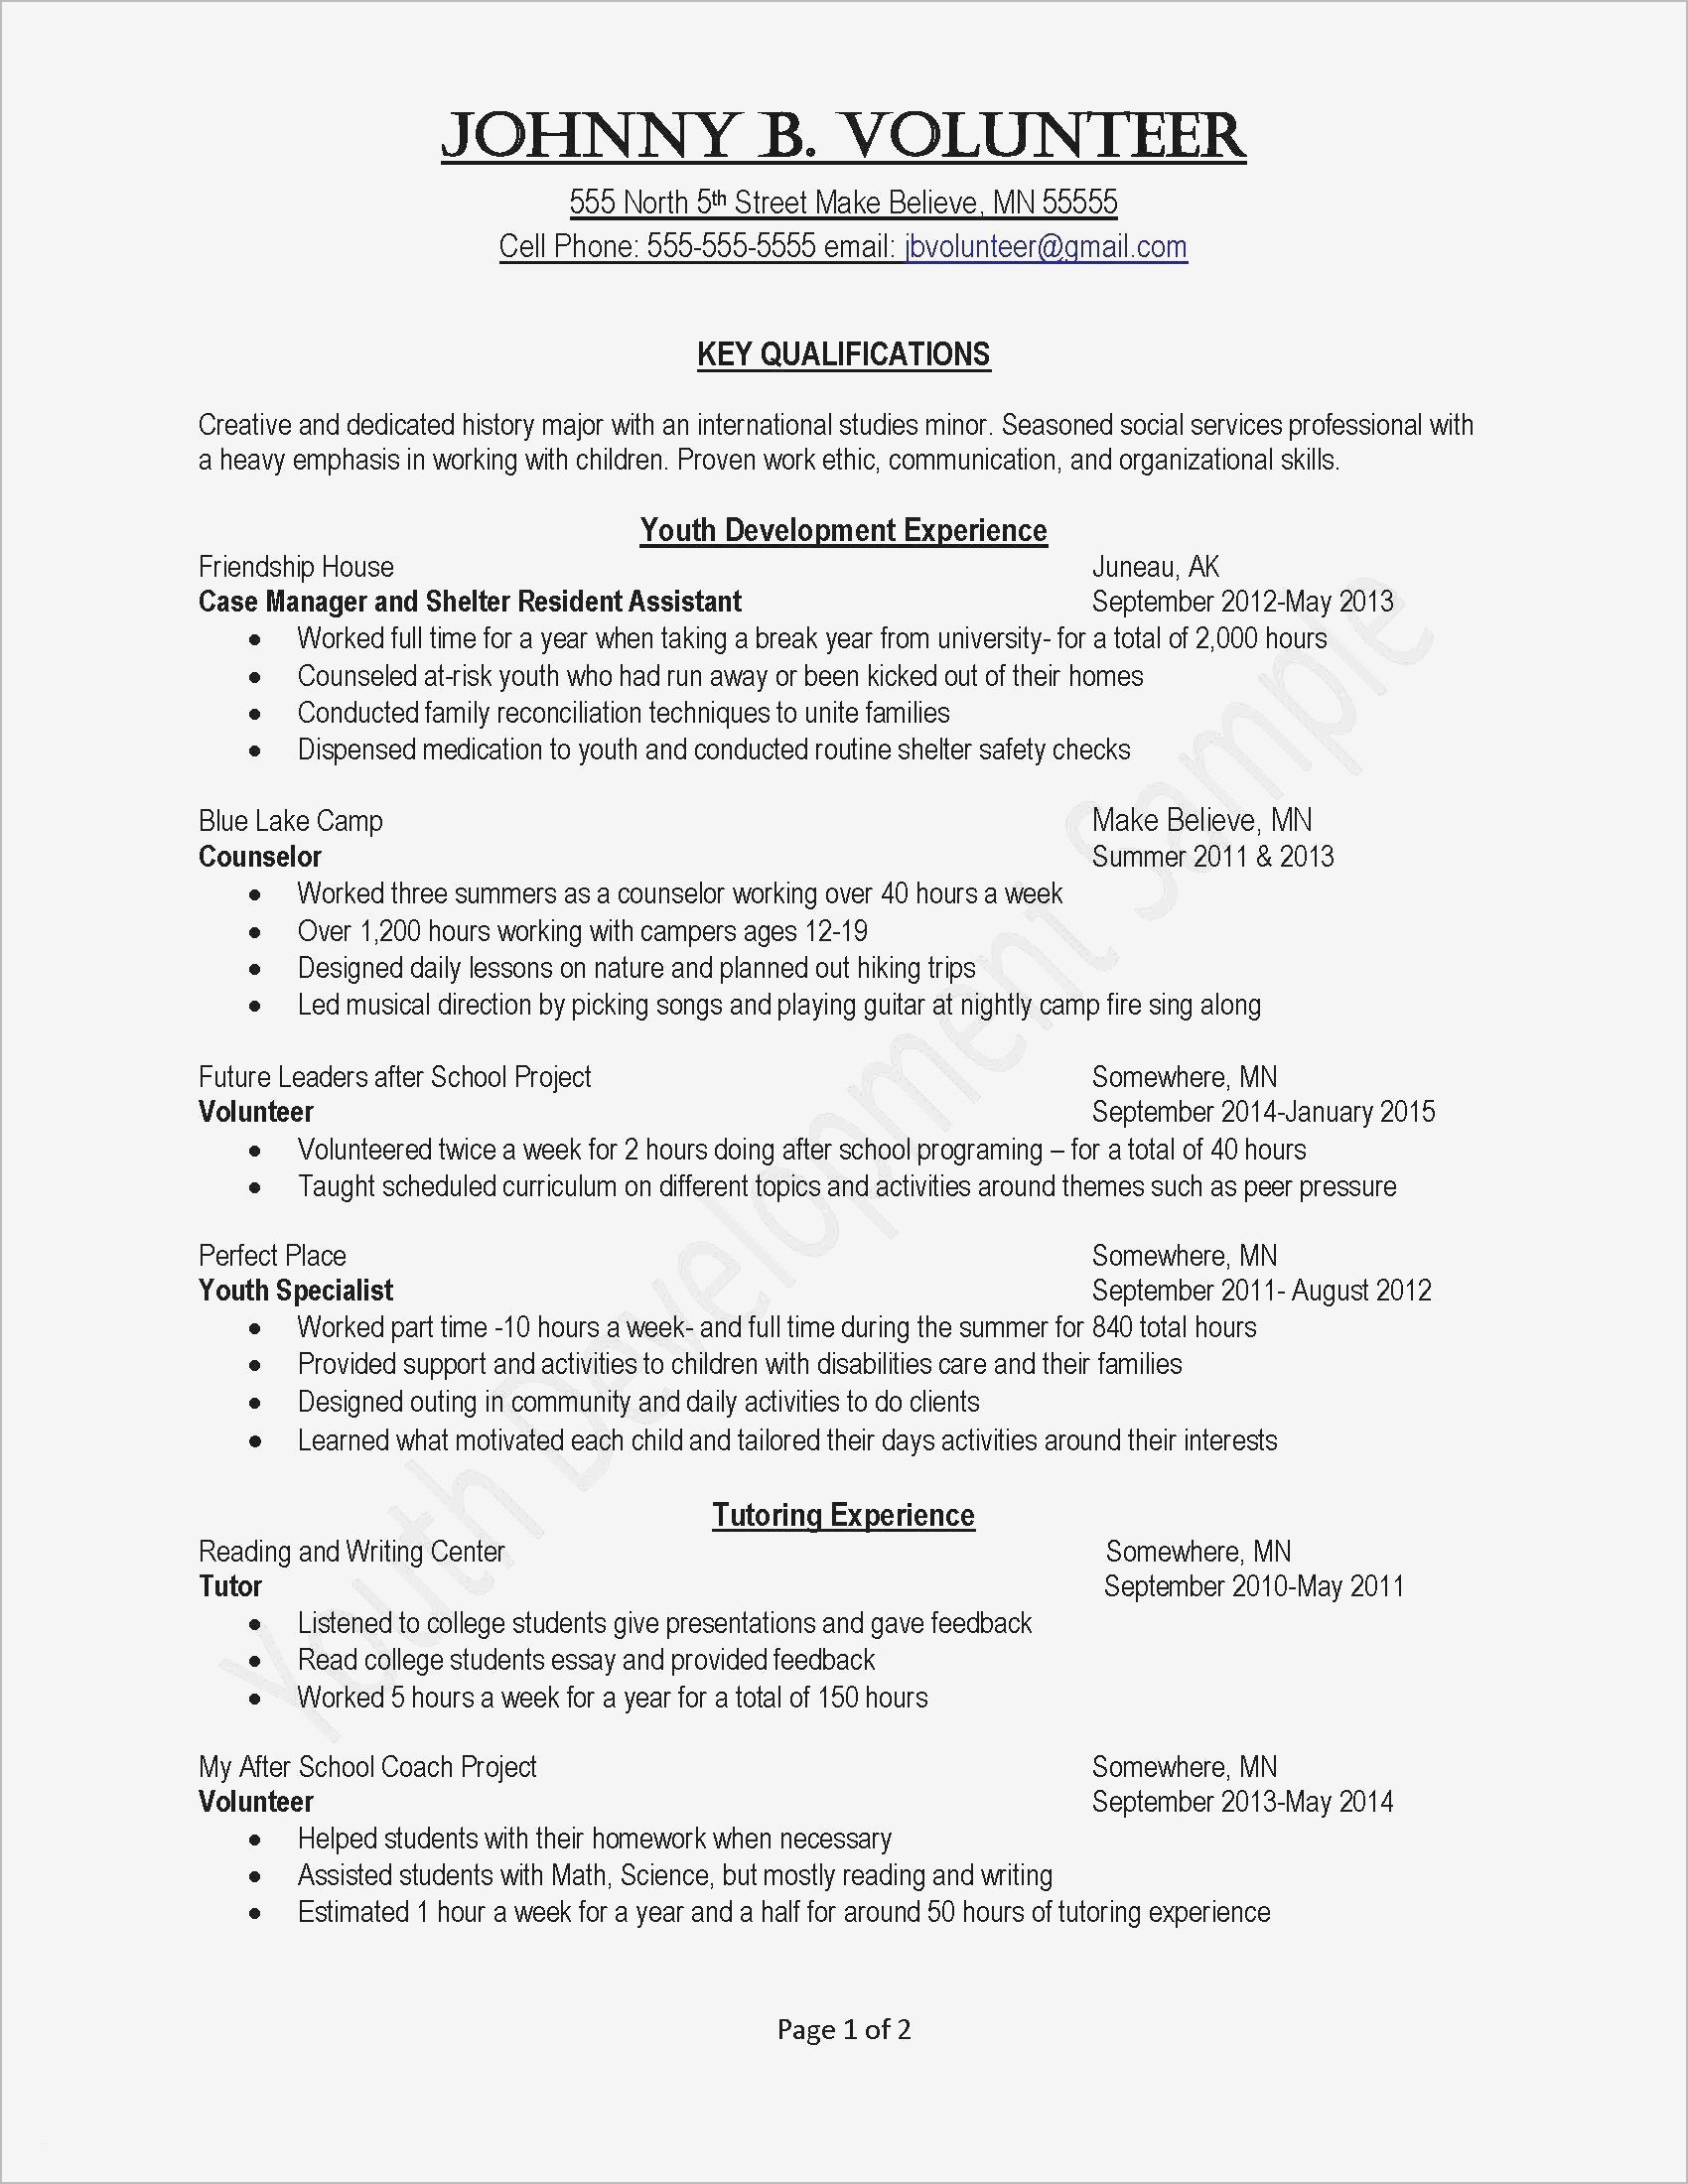 Job Application Letter Template Word - Professional Resume Cover Letter Template Best Perfect Professional